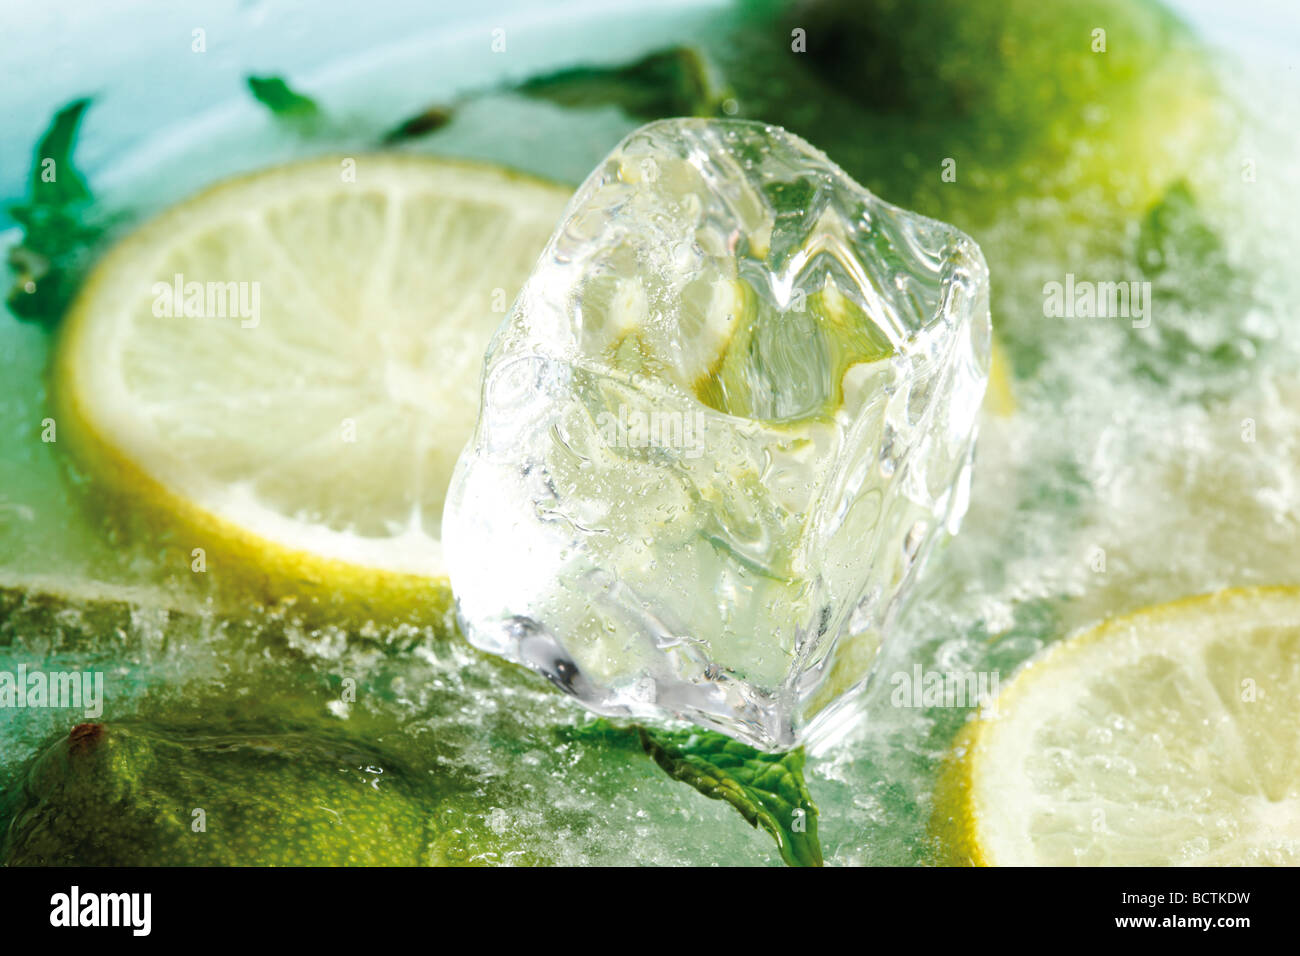 Tranches de citron congelé, lime slices et des cubes de glace Photo Stock